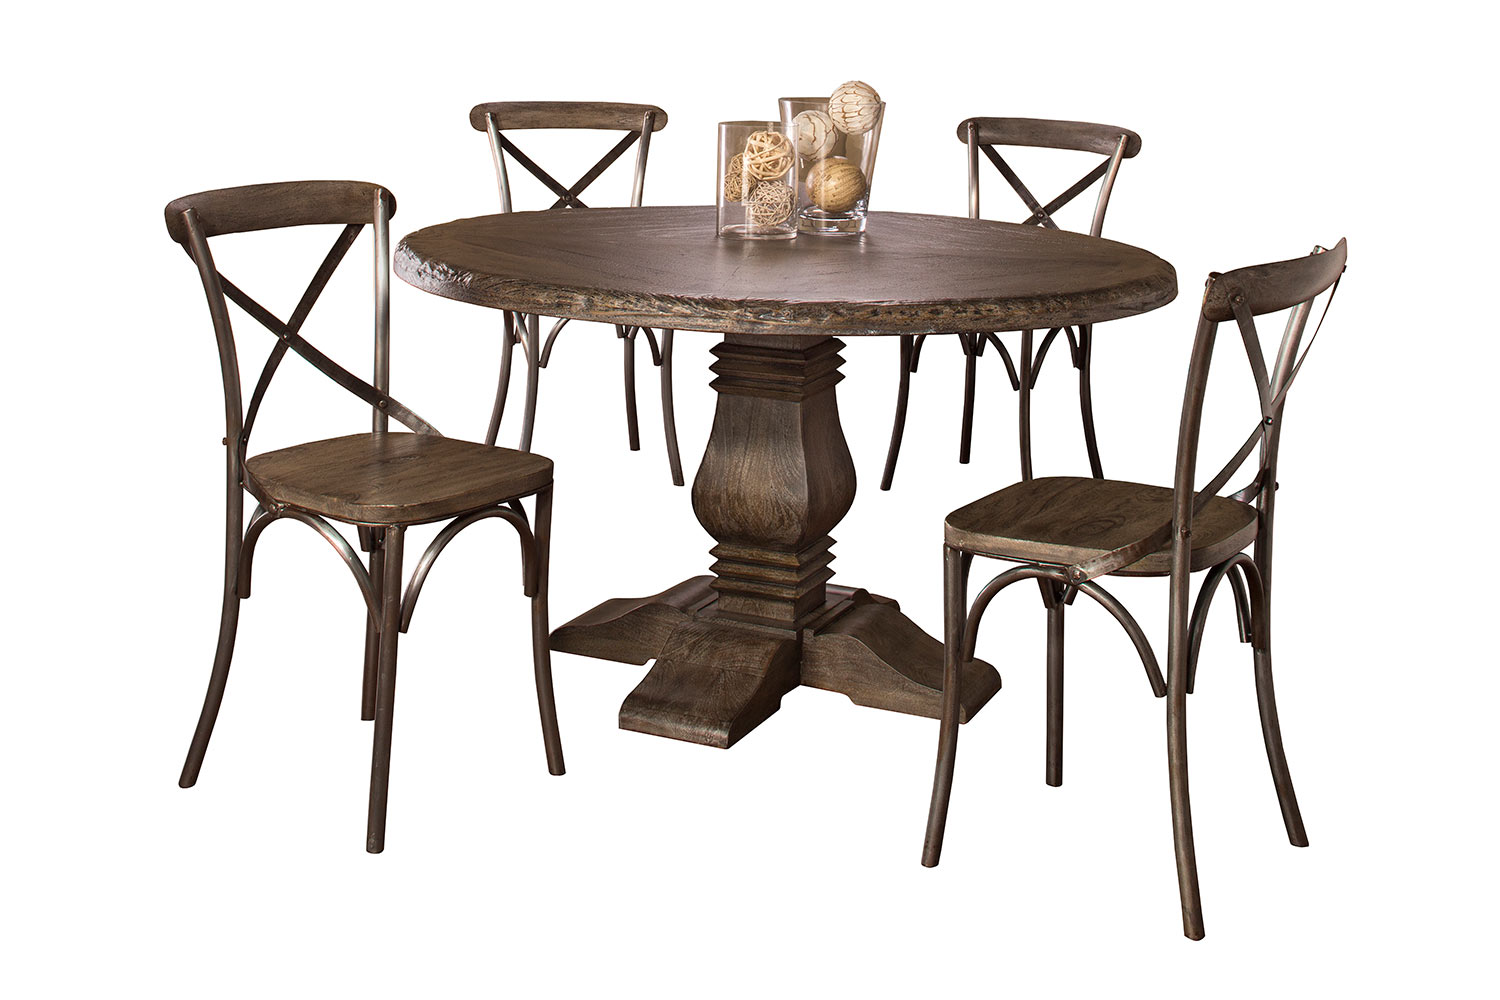 Hillsdale Lorient 5 PC Round Dining Set with X Back Chairs - Washed Charcoal Gray